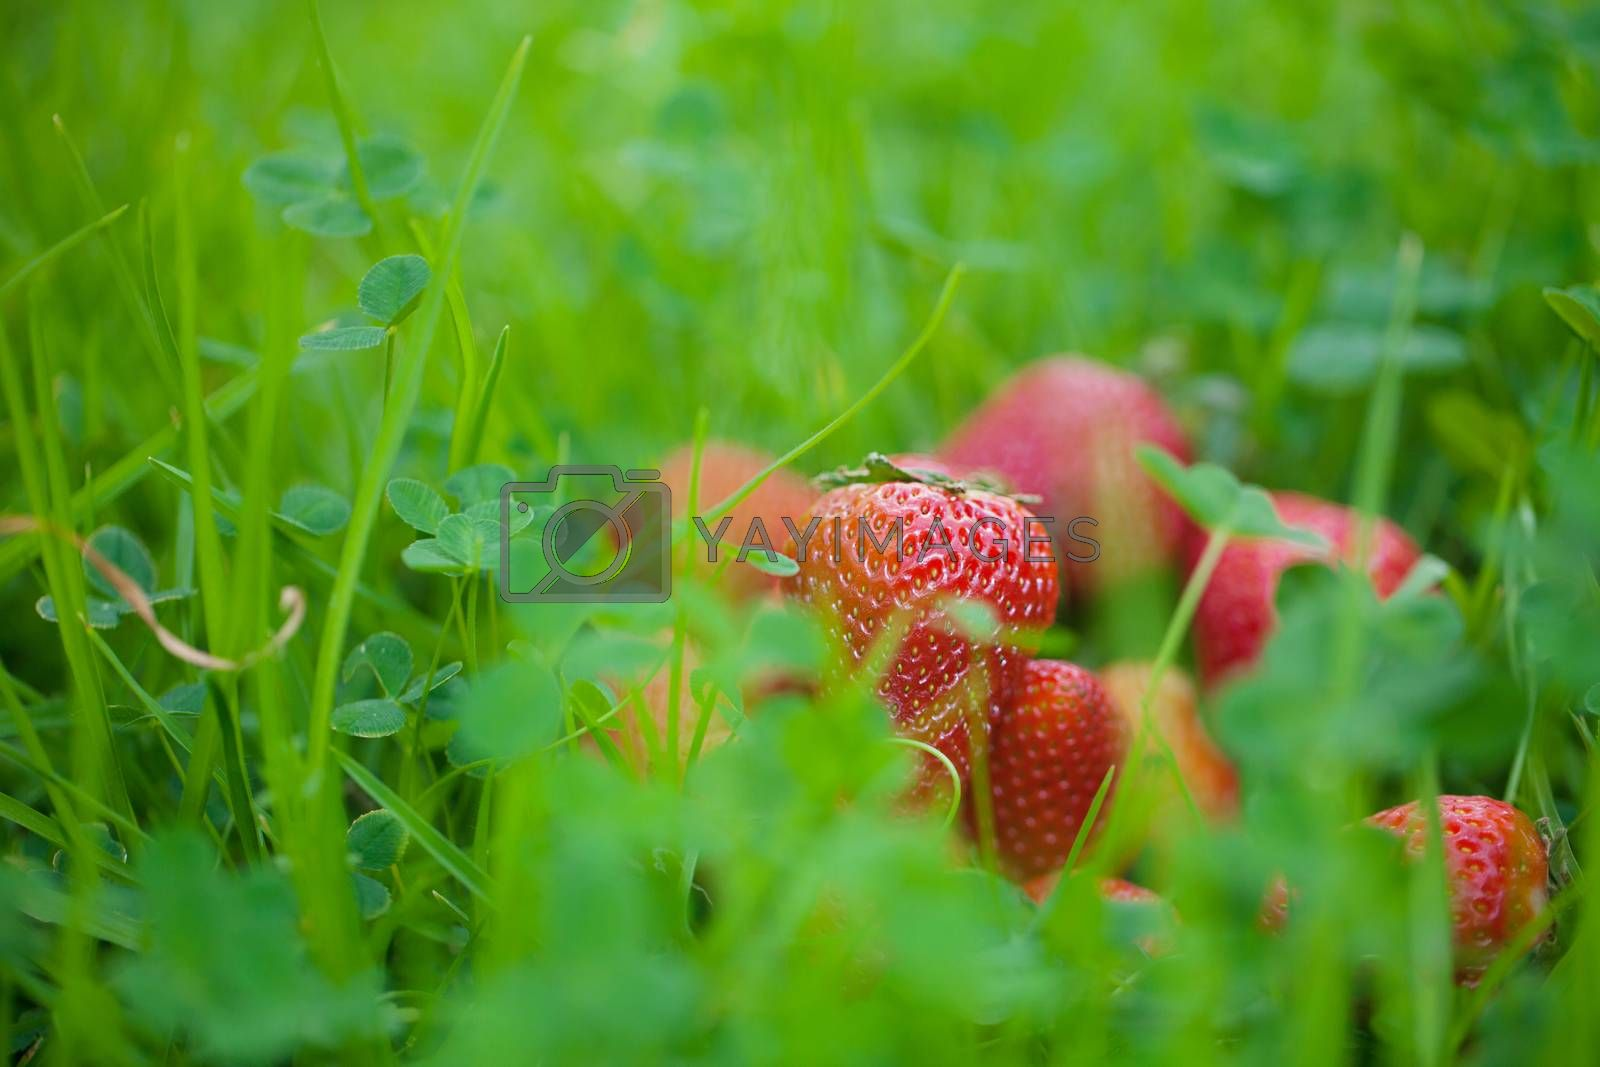 strawberries lying on green grass